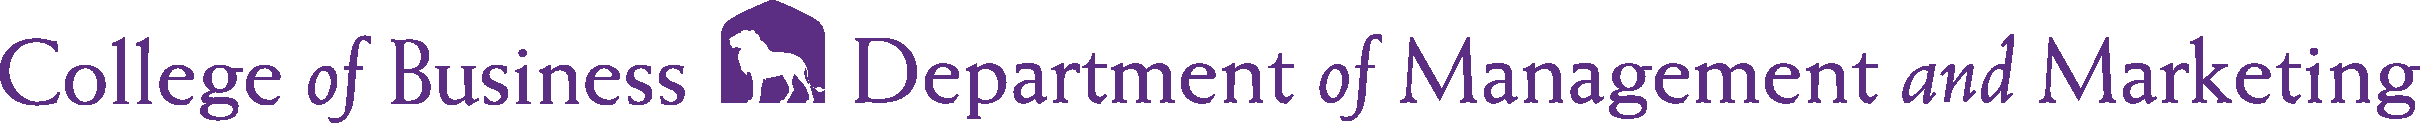 College of Business - Management and Marketing Logo - Purple - Version 2